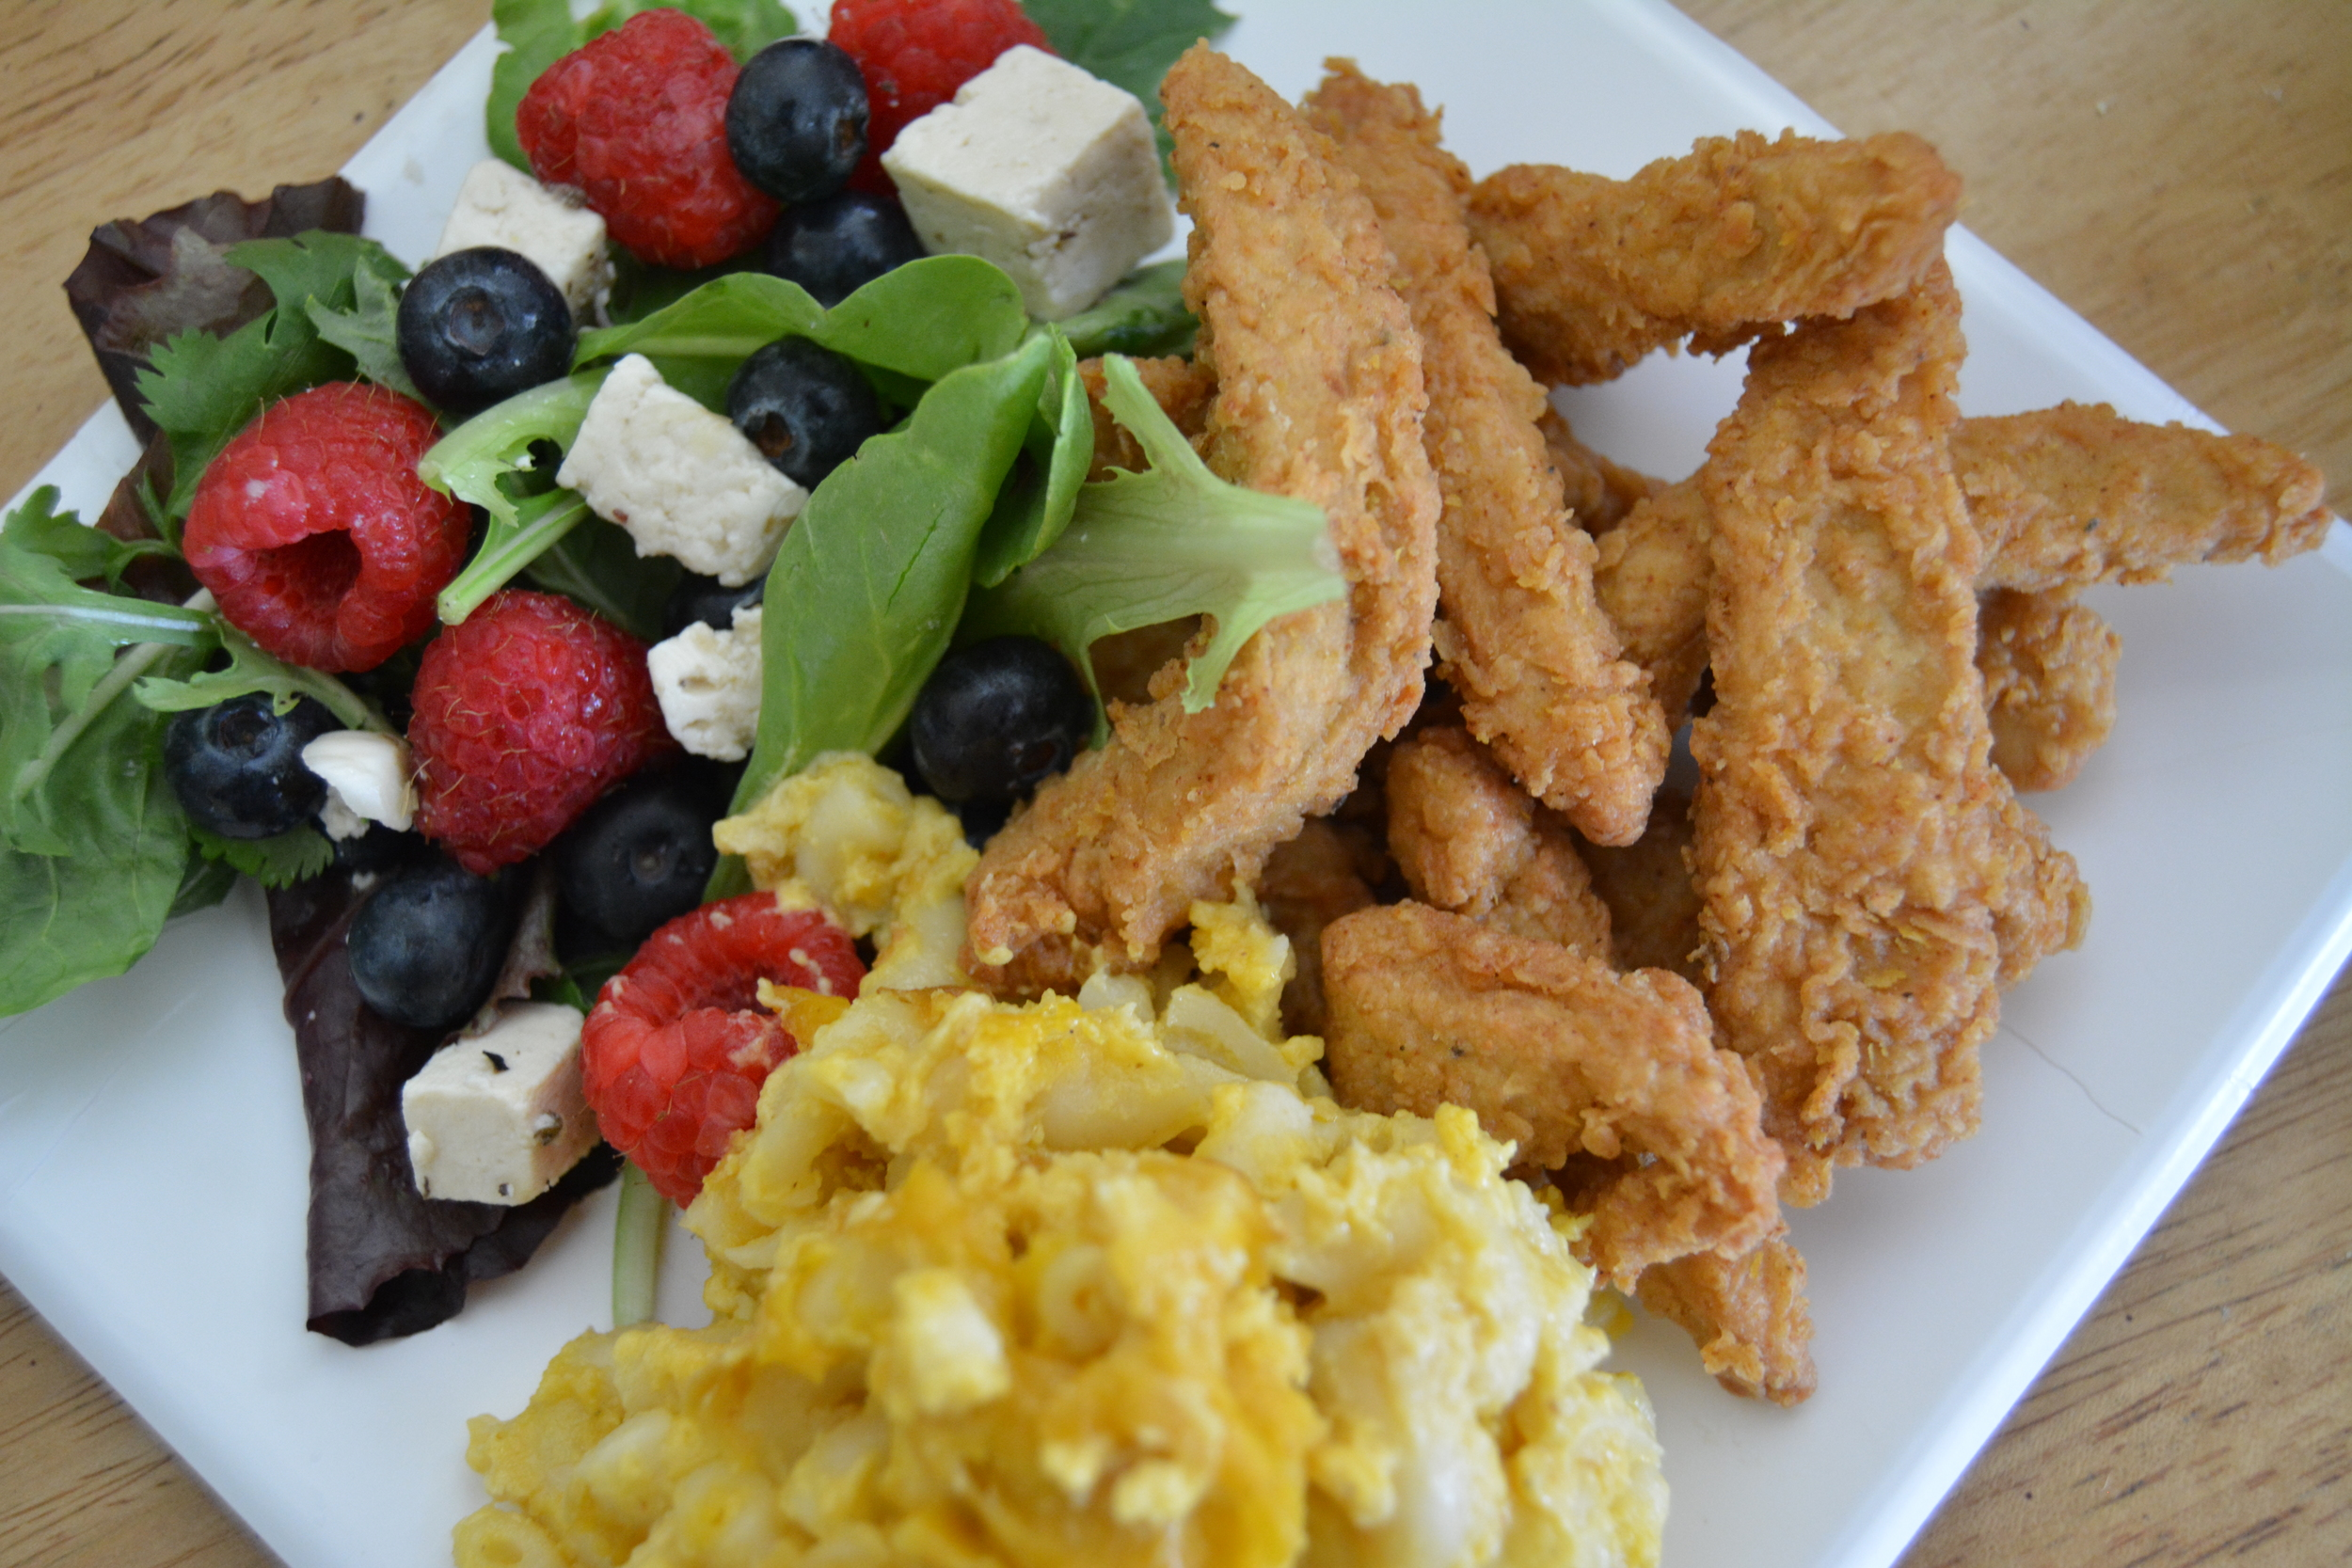 Seasonal Summer Plate; Fresh Berry Salad with Homemade Herbed Feta, Baked Macaroni and Cheese, and Southern Fried Seitan Strips